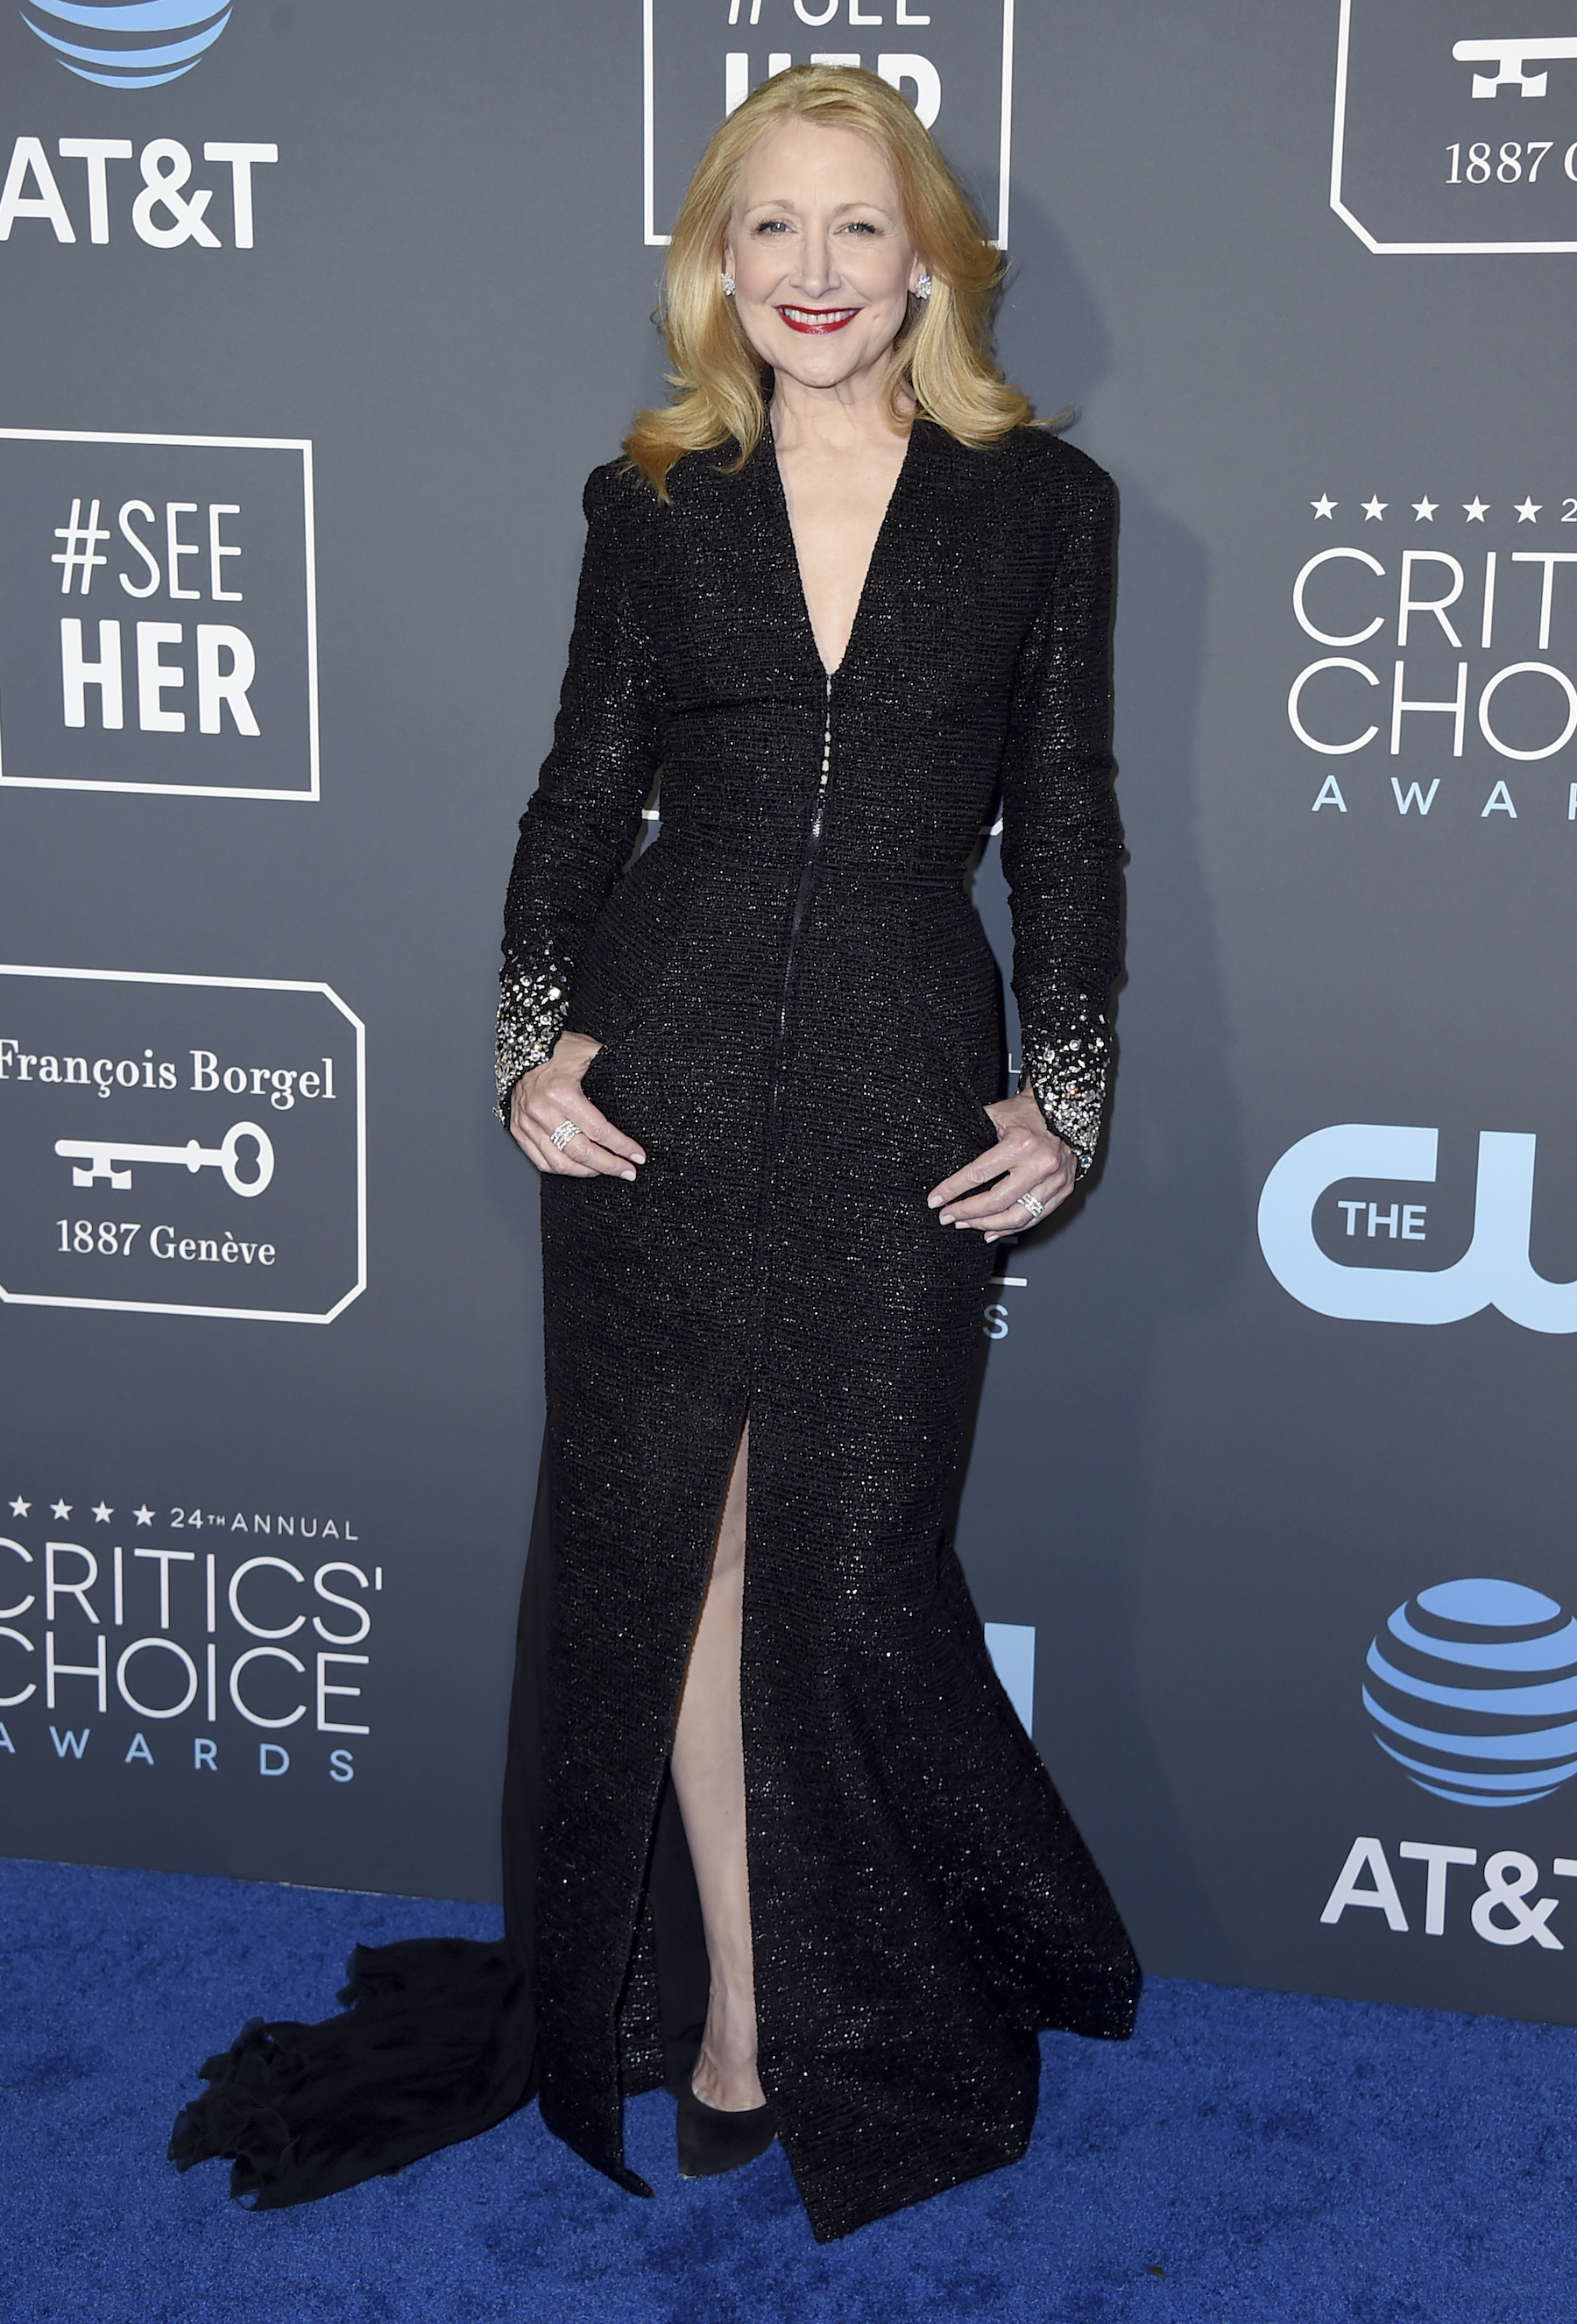 <div class='meta'><div class='origin-logo' data-origin='AP'></div><span class='caption-text' data-credit='Jordan Strauss/Invision/AP'>Patricia Clarkson arrives at the 24th annual Critics' Choice Awards on Sunday, Jan. 13, 2019, at the Barker Hangar in Santa Monica, Calif.</span></div>